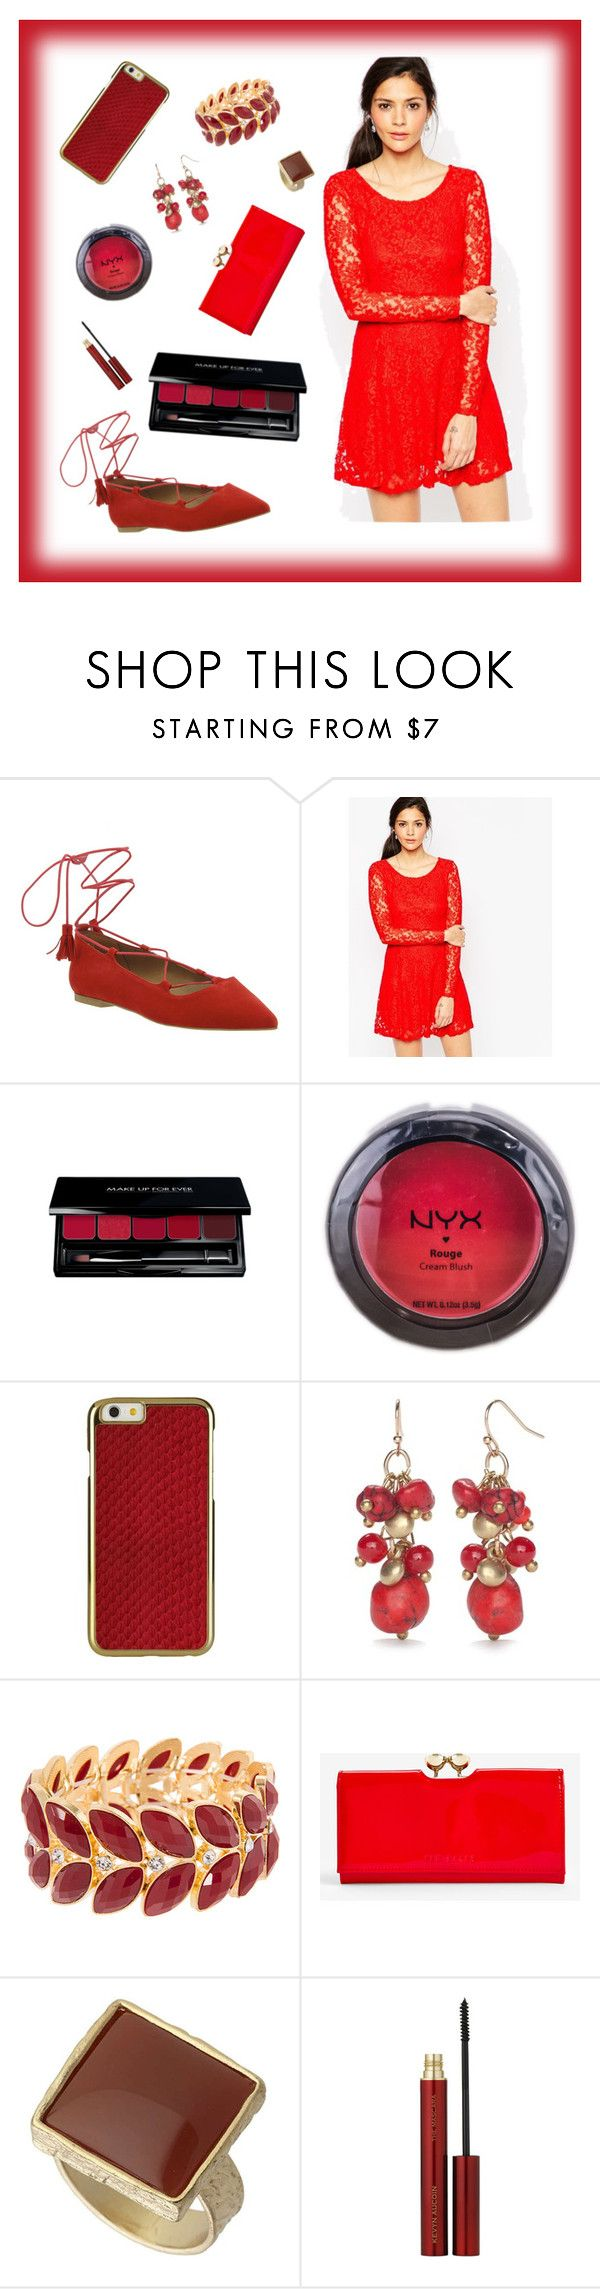 """redishhh"" by xxmichelleg ❤ liked on Polyvore featuring Office, WalG, NYX, New Directions, Ted Baker, Dorothy Perkins and Kevyn Aucoin"